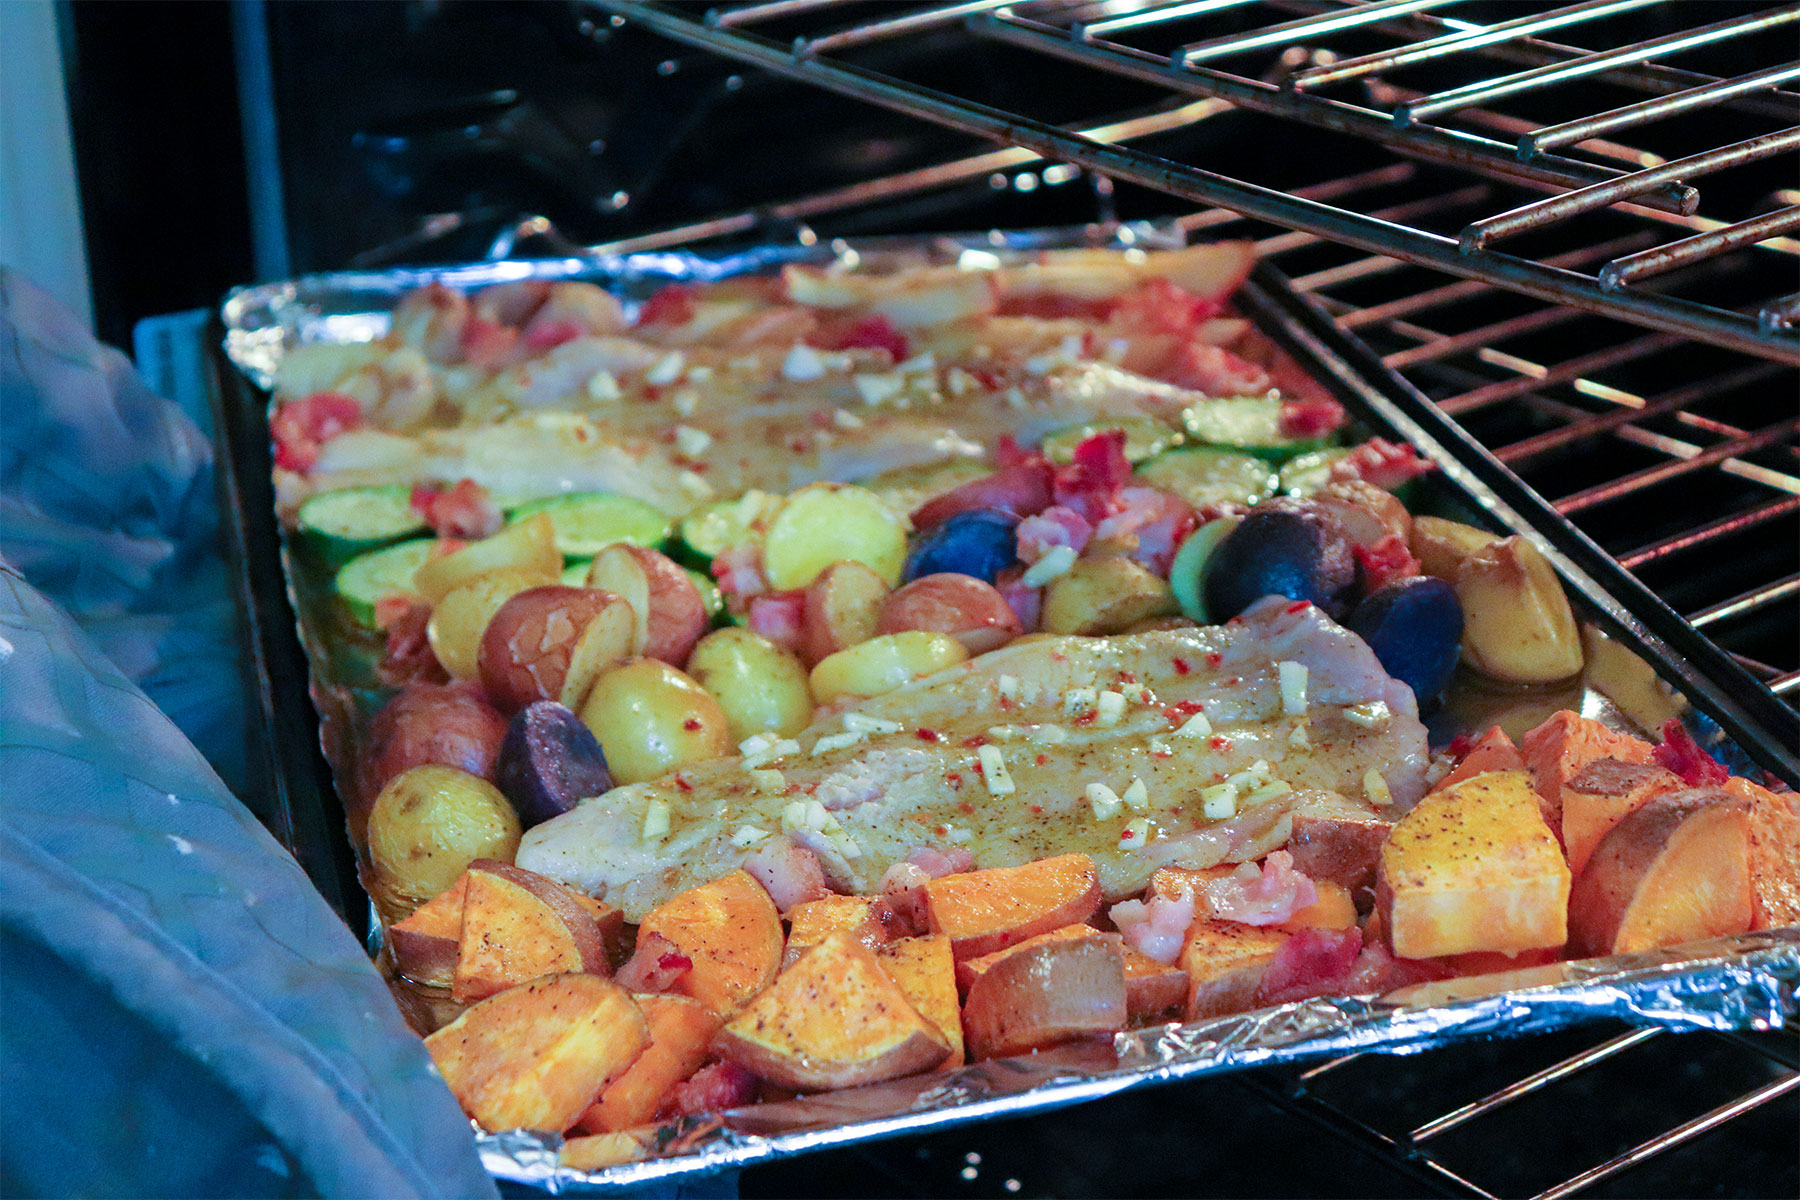 catfish added to sheet pan with veggies in oven